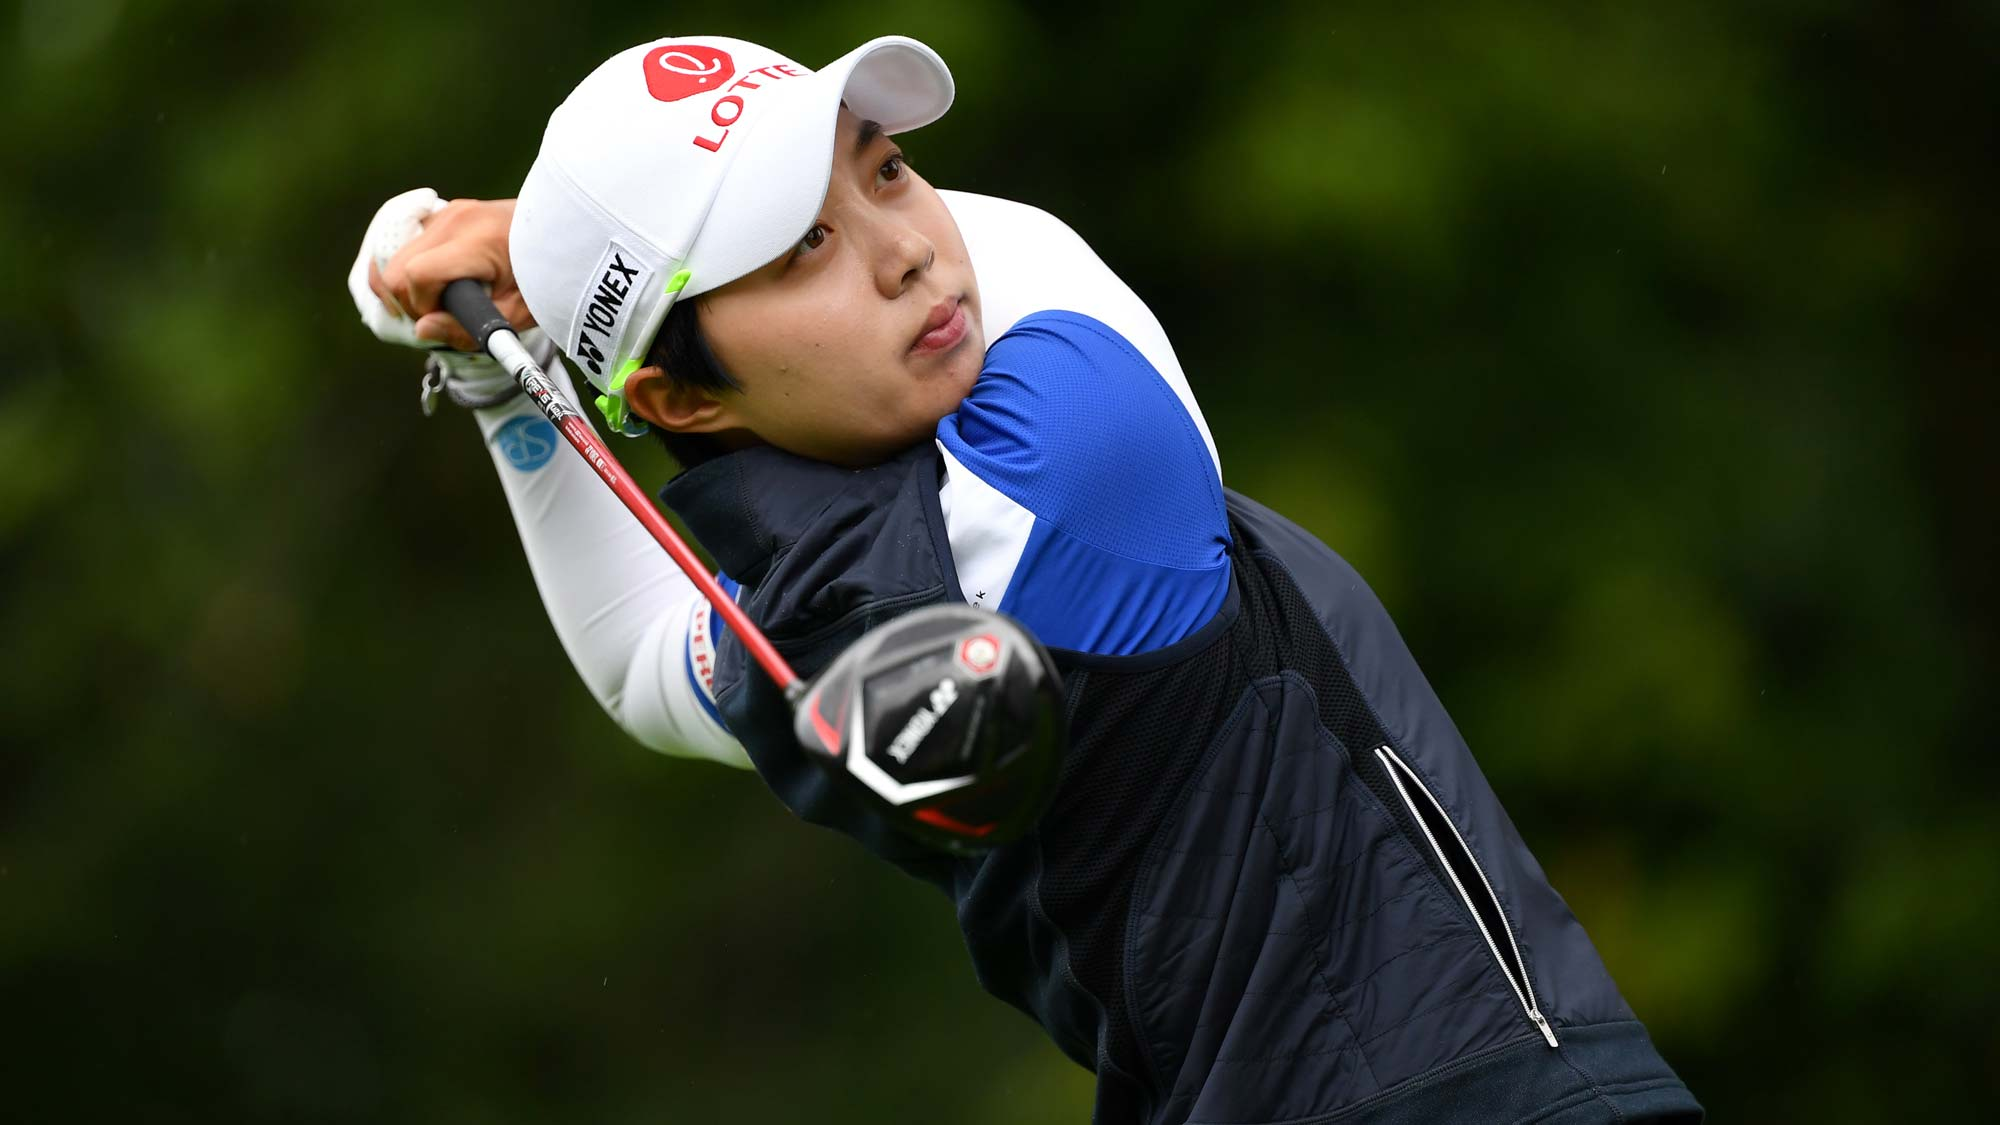 Hyo Joo Kim of South Korea in action on the 9th hole during day 4 of the Evian Championship